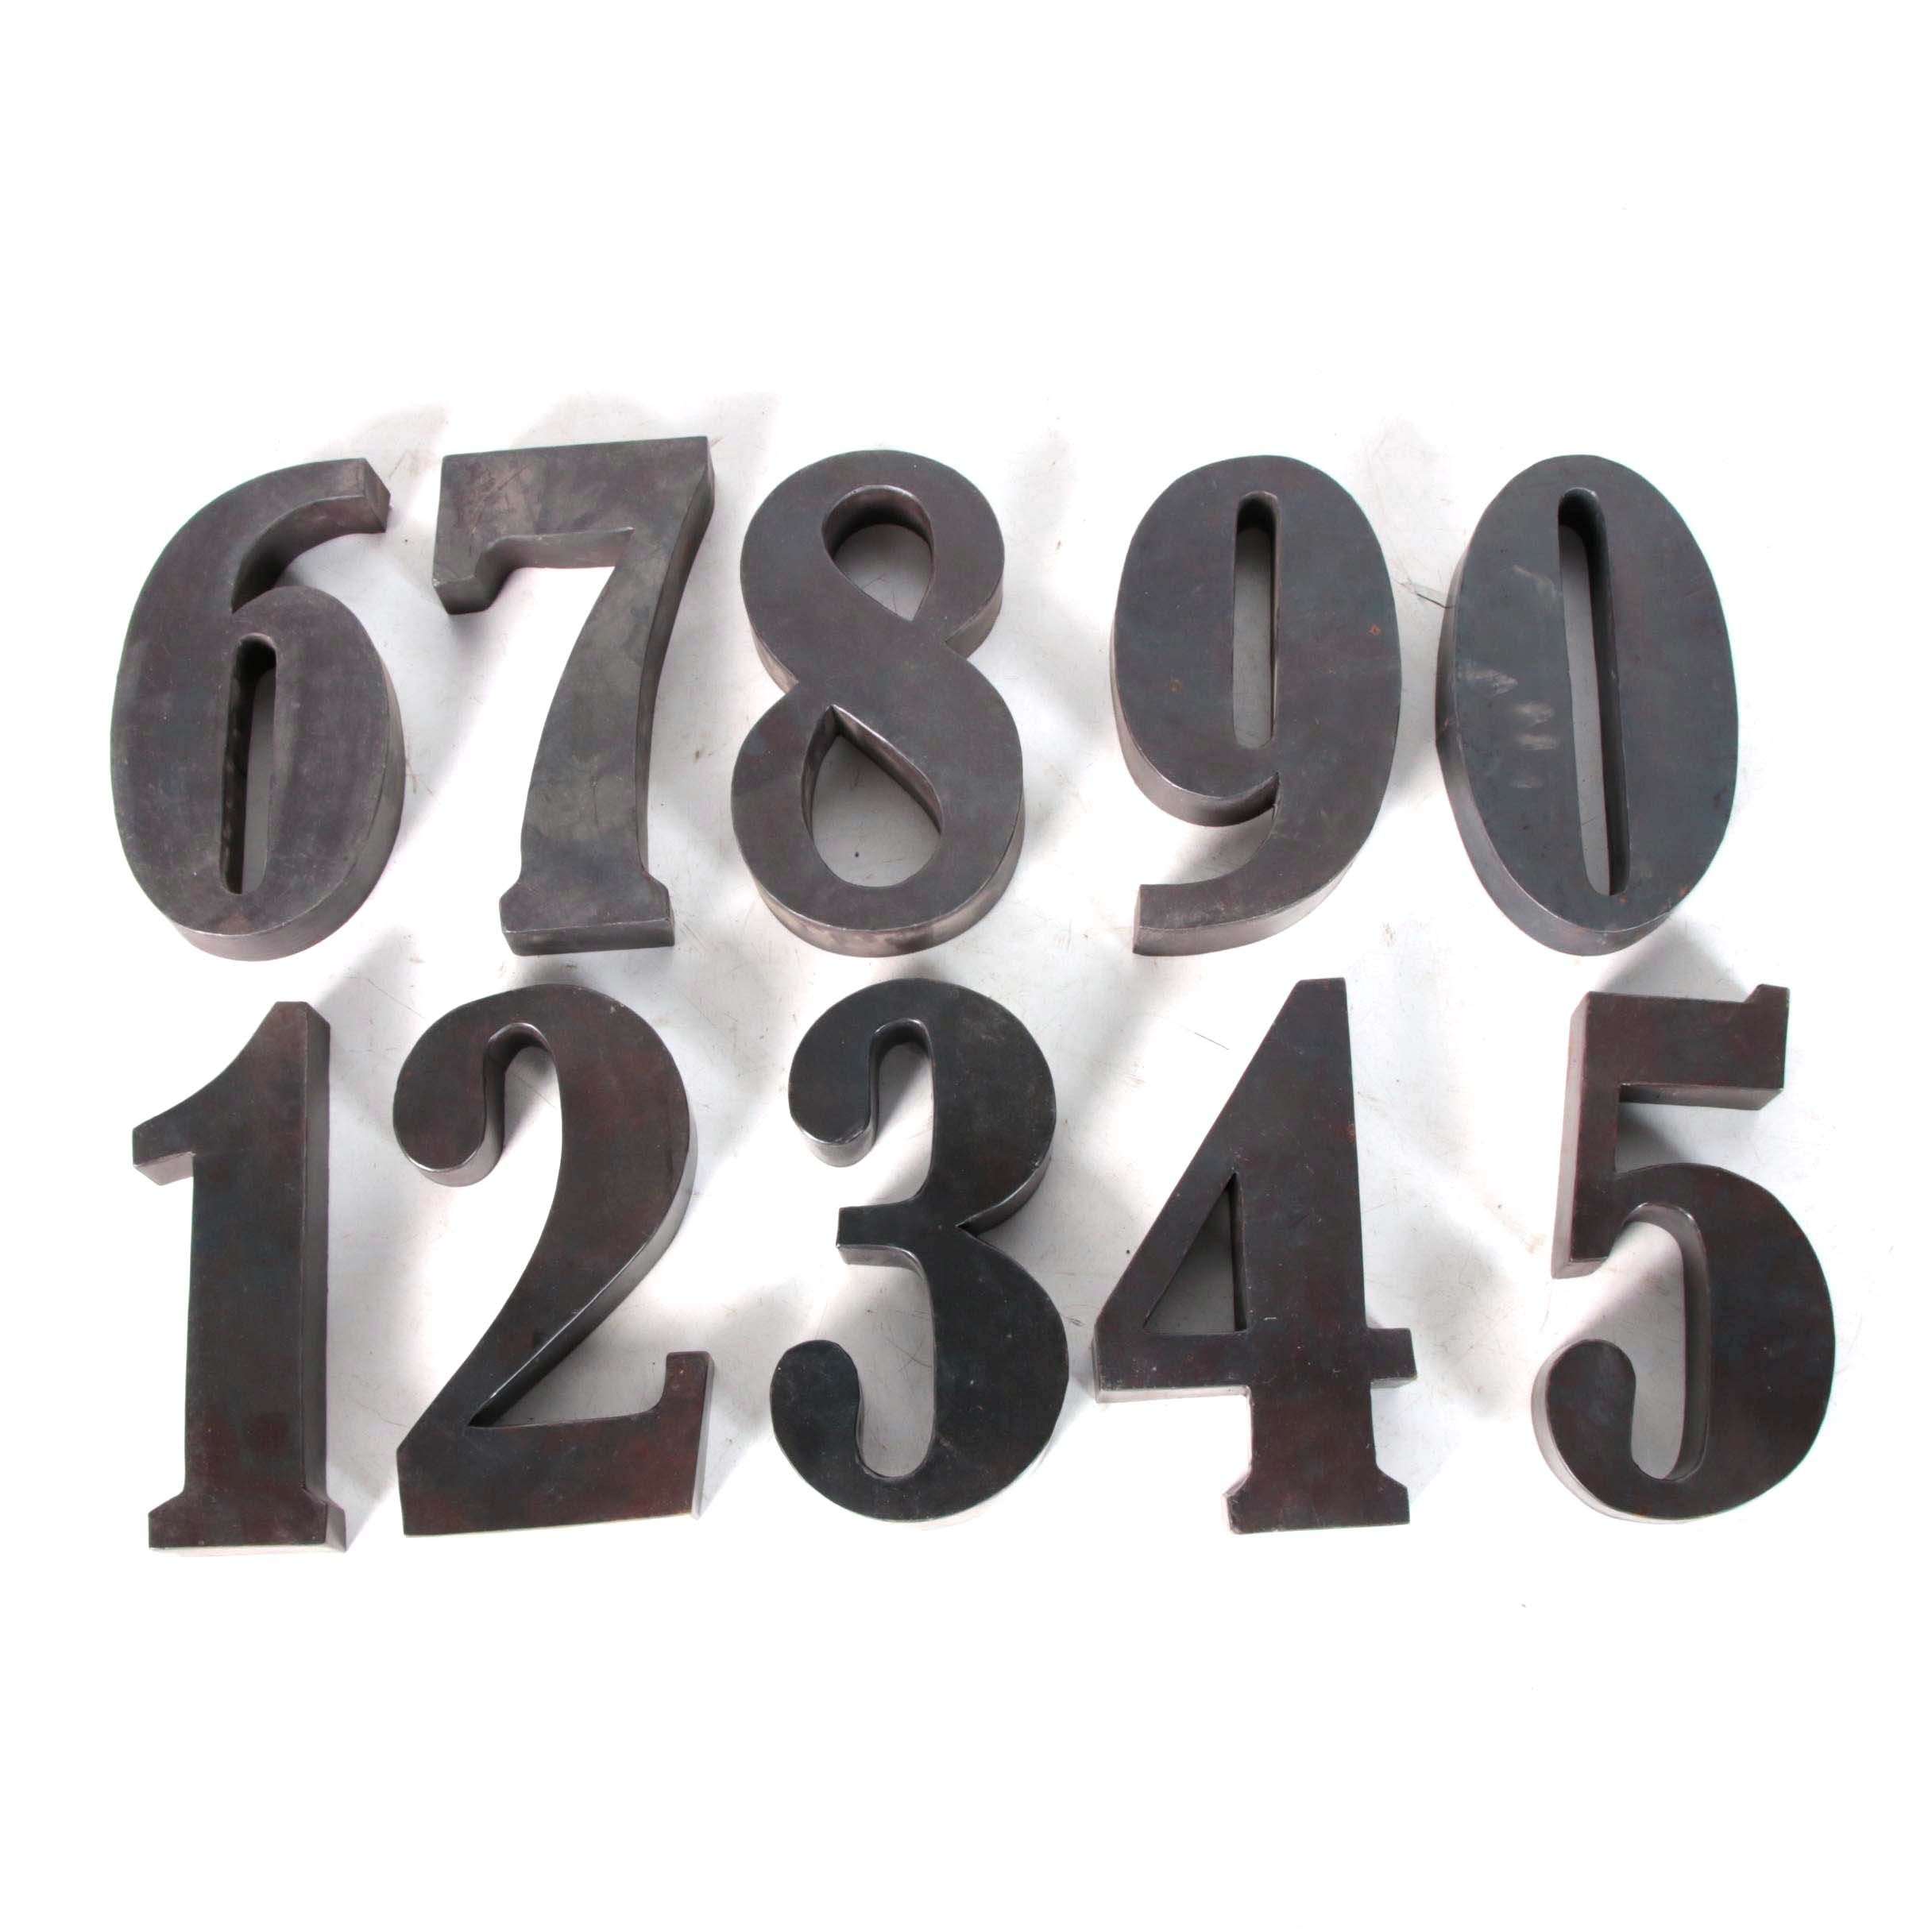 Decorative Metal Wall Hanging Numbers